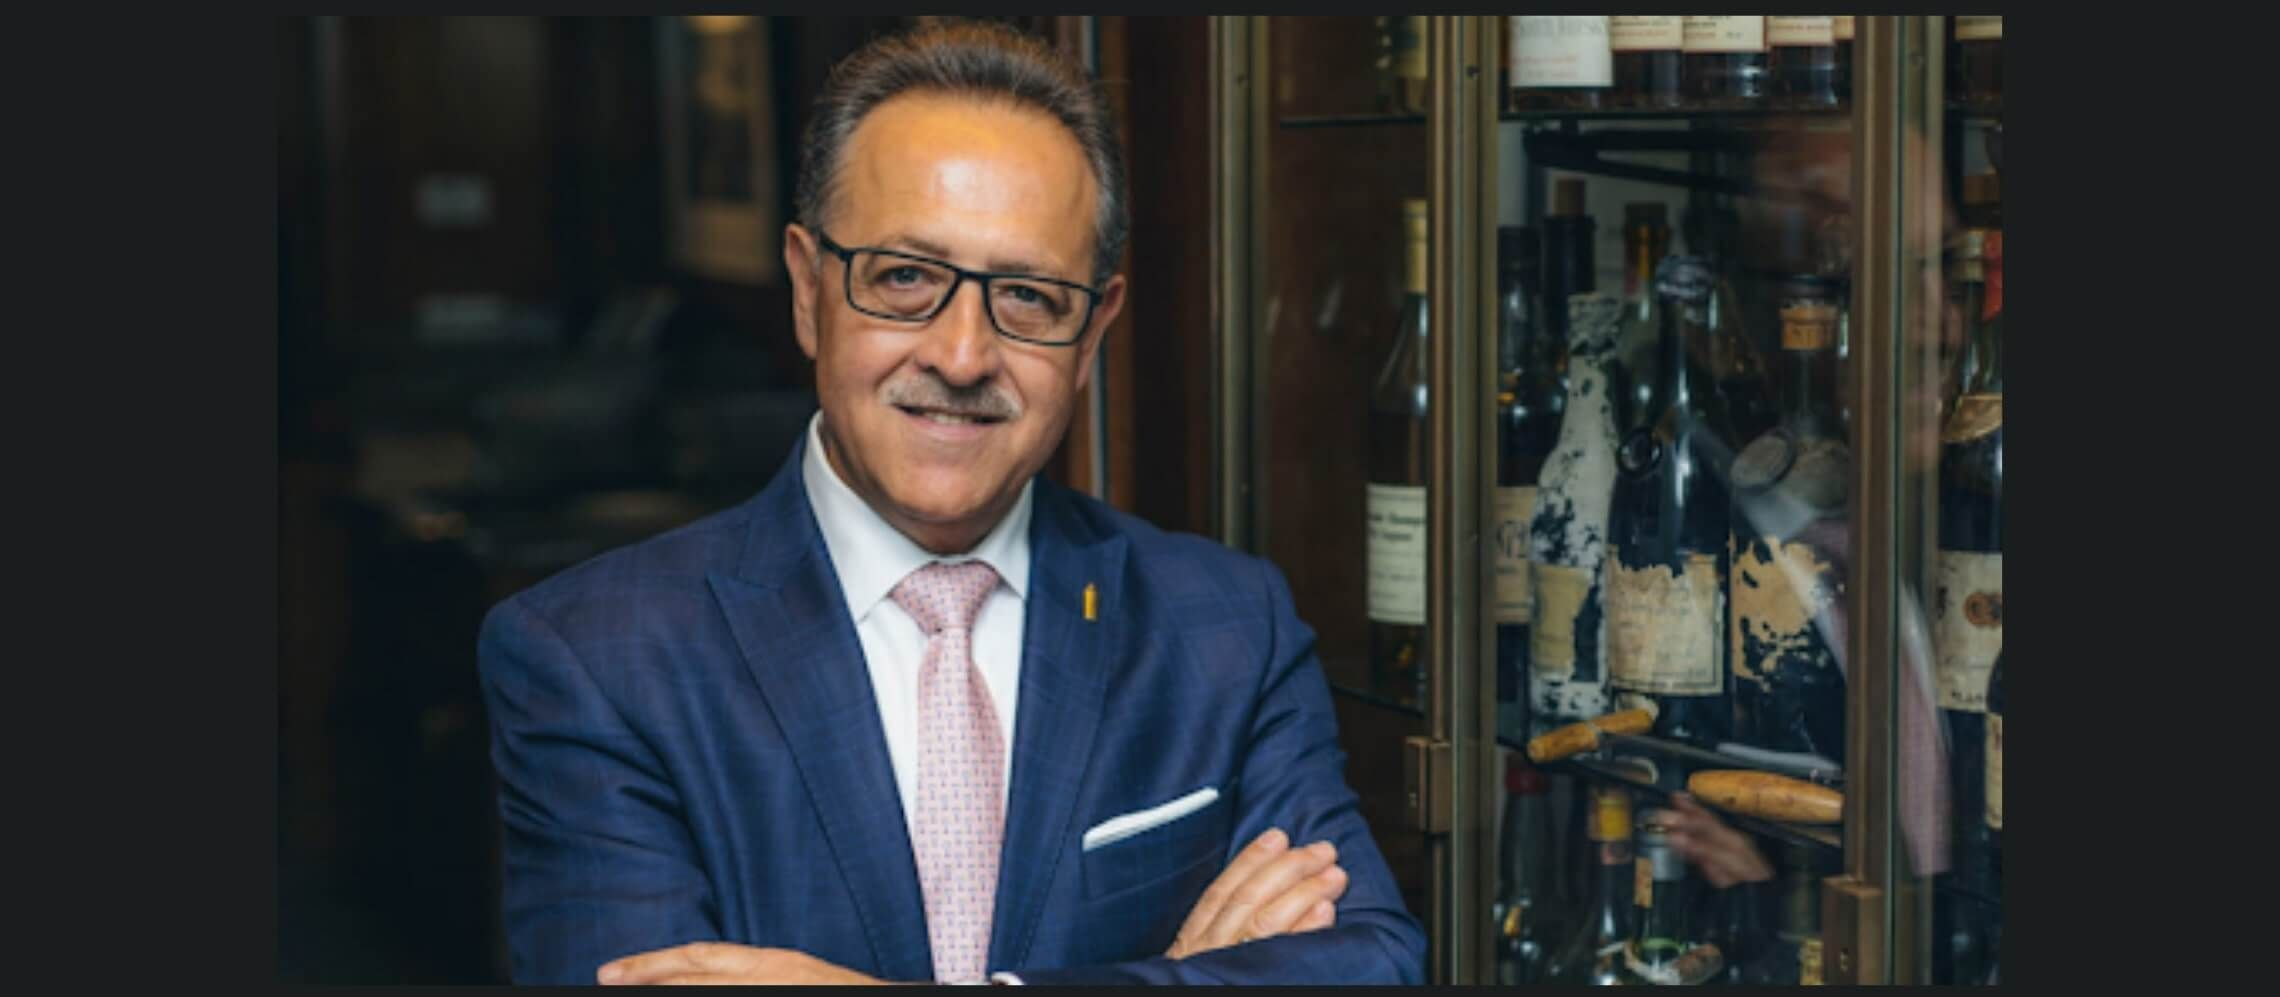 Photo for: World famous bartender Salvatore Calabrese Joins London Spirits Competition Judging Panel